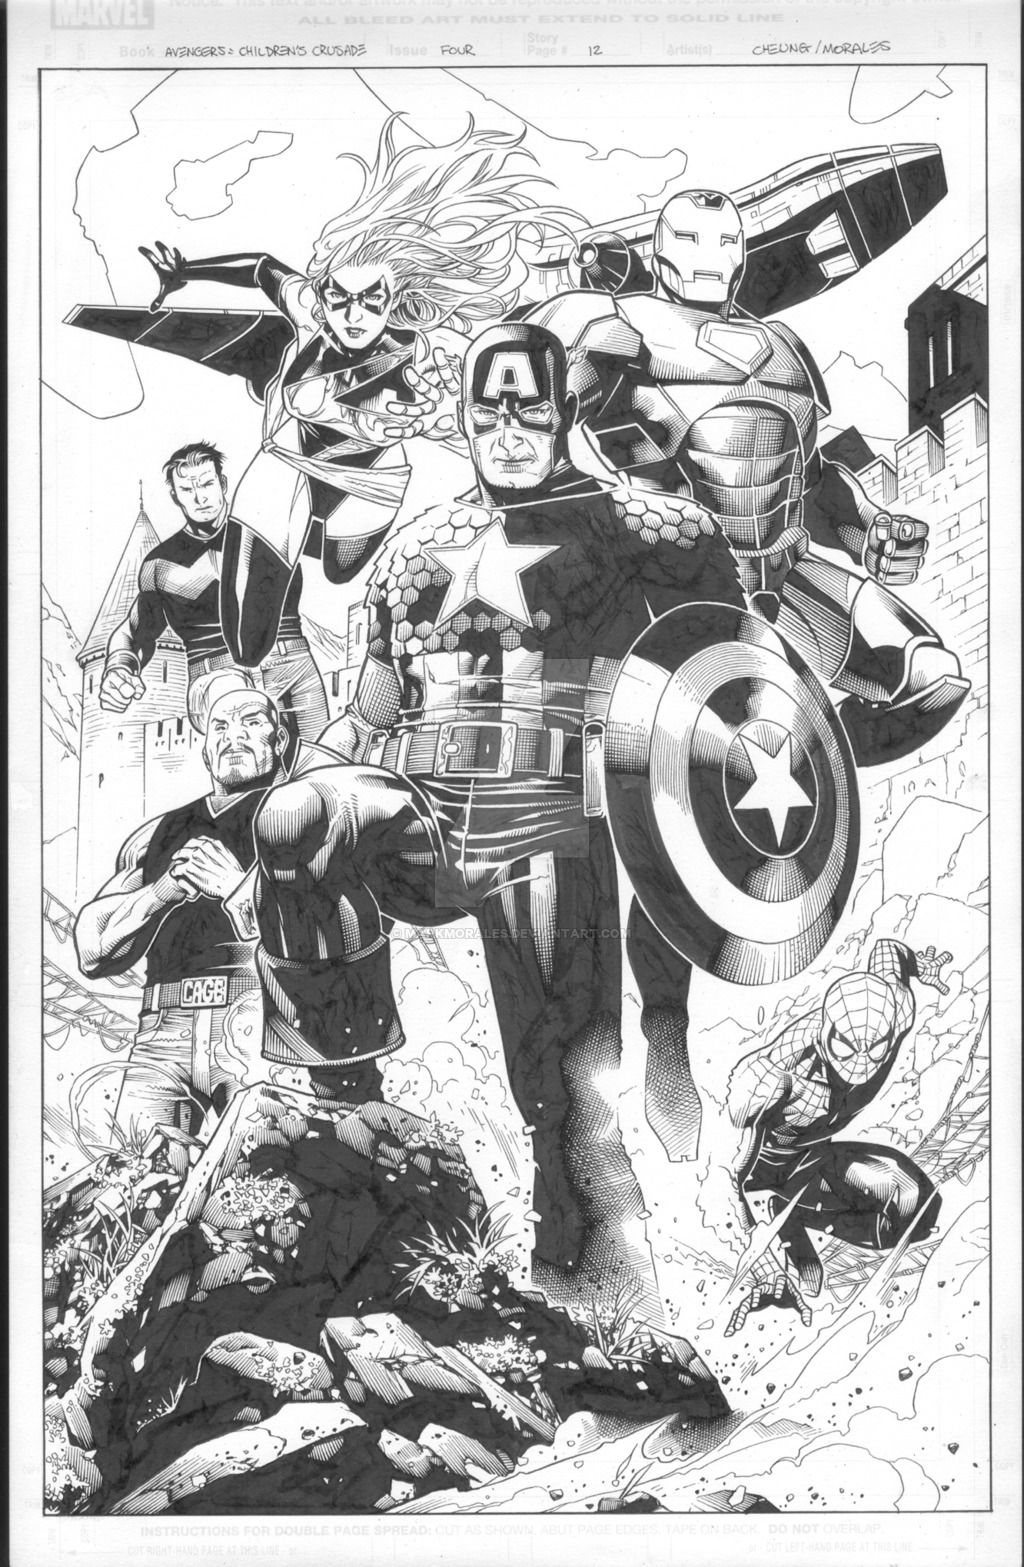 Avengers: Children's Crusade 4 pg 12 by MarkMorales